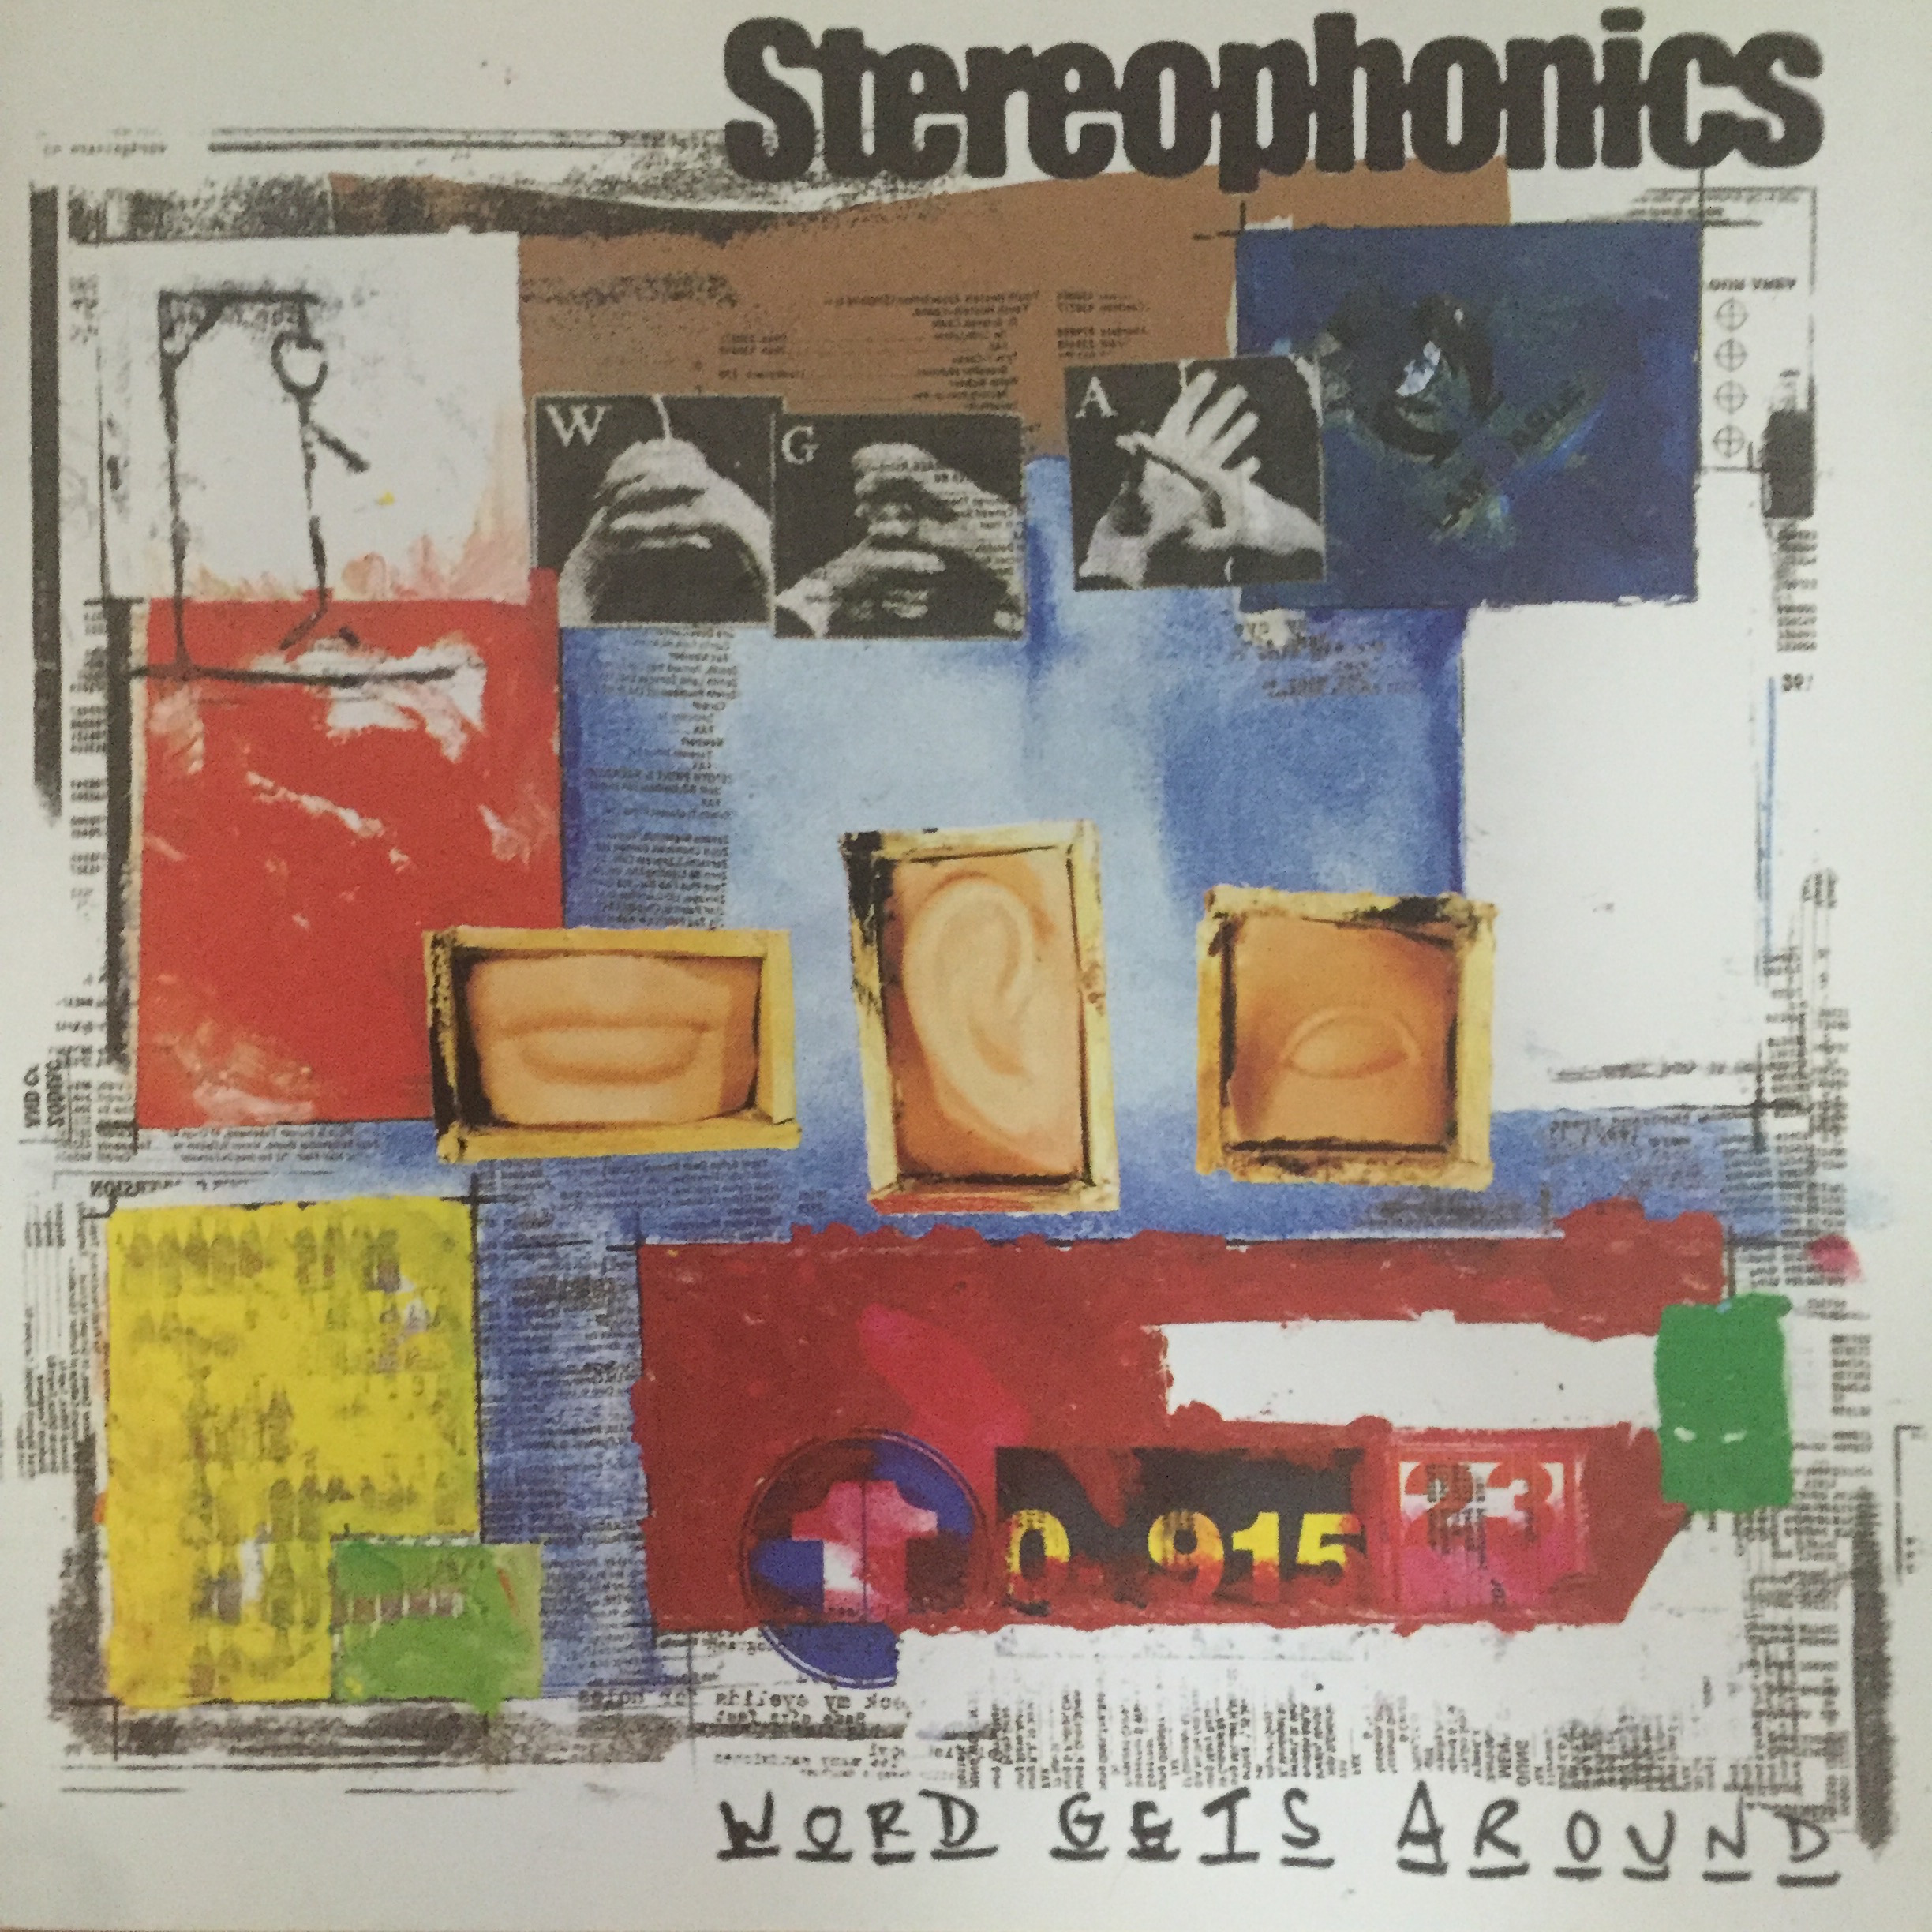 Stereophonics 「local boy in the photograph」